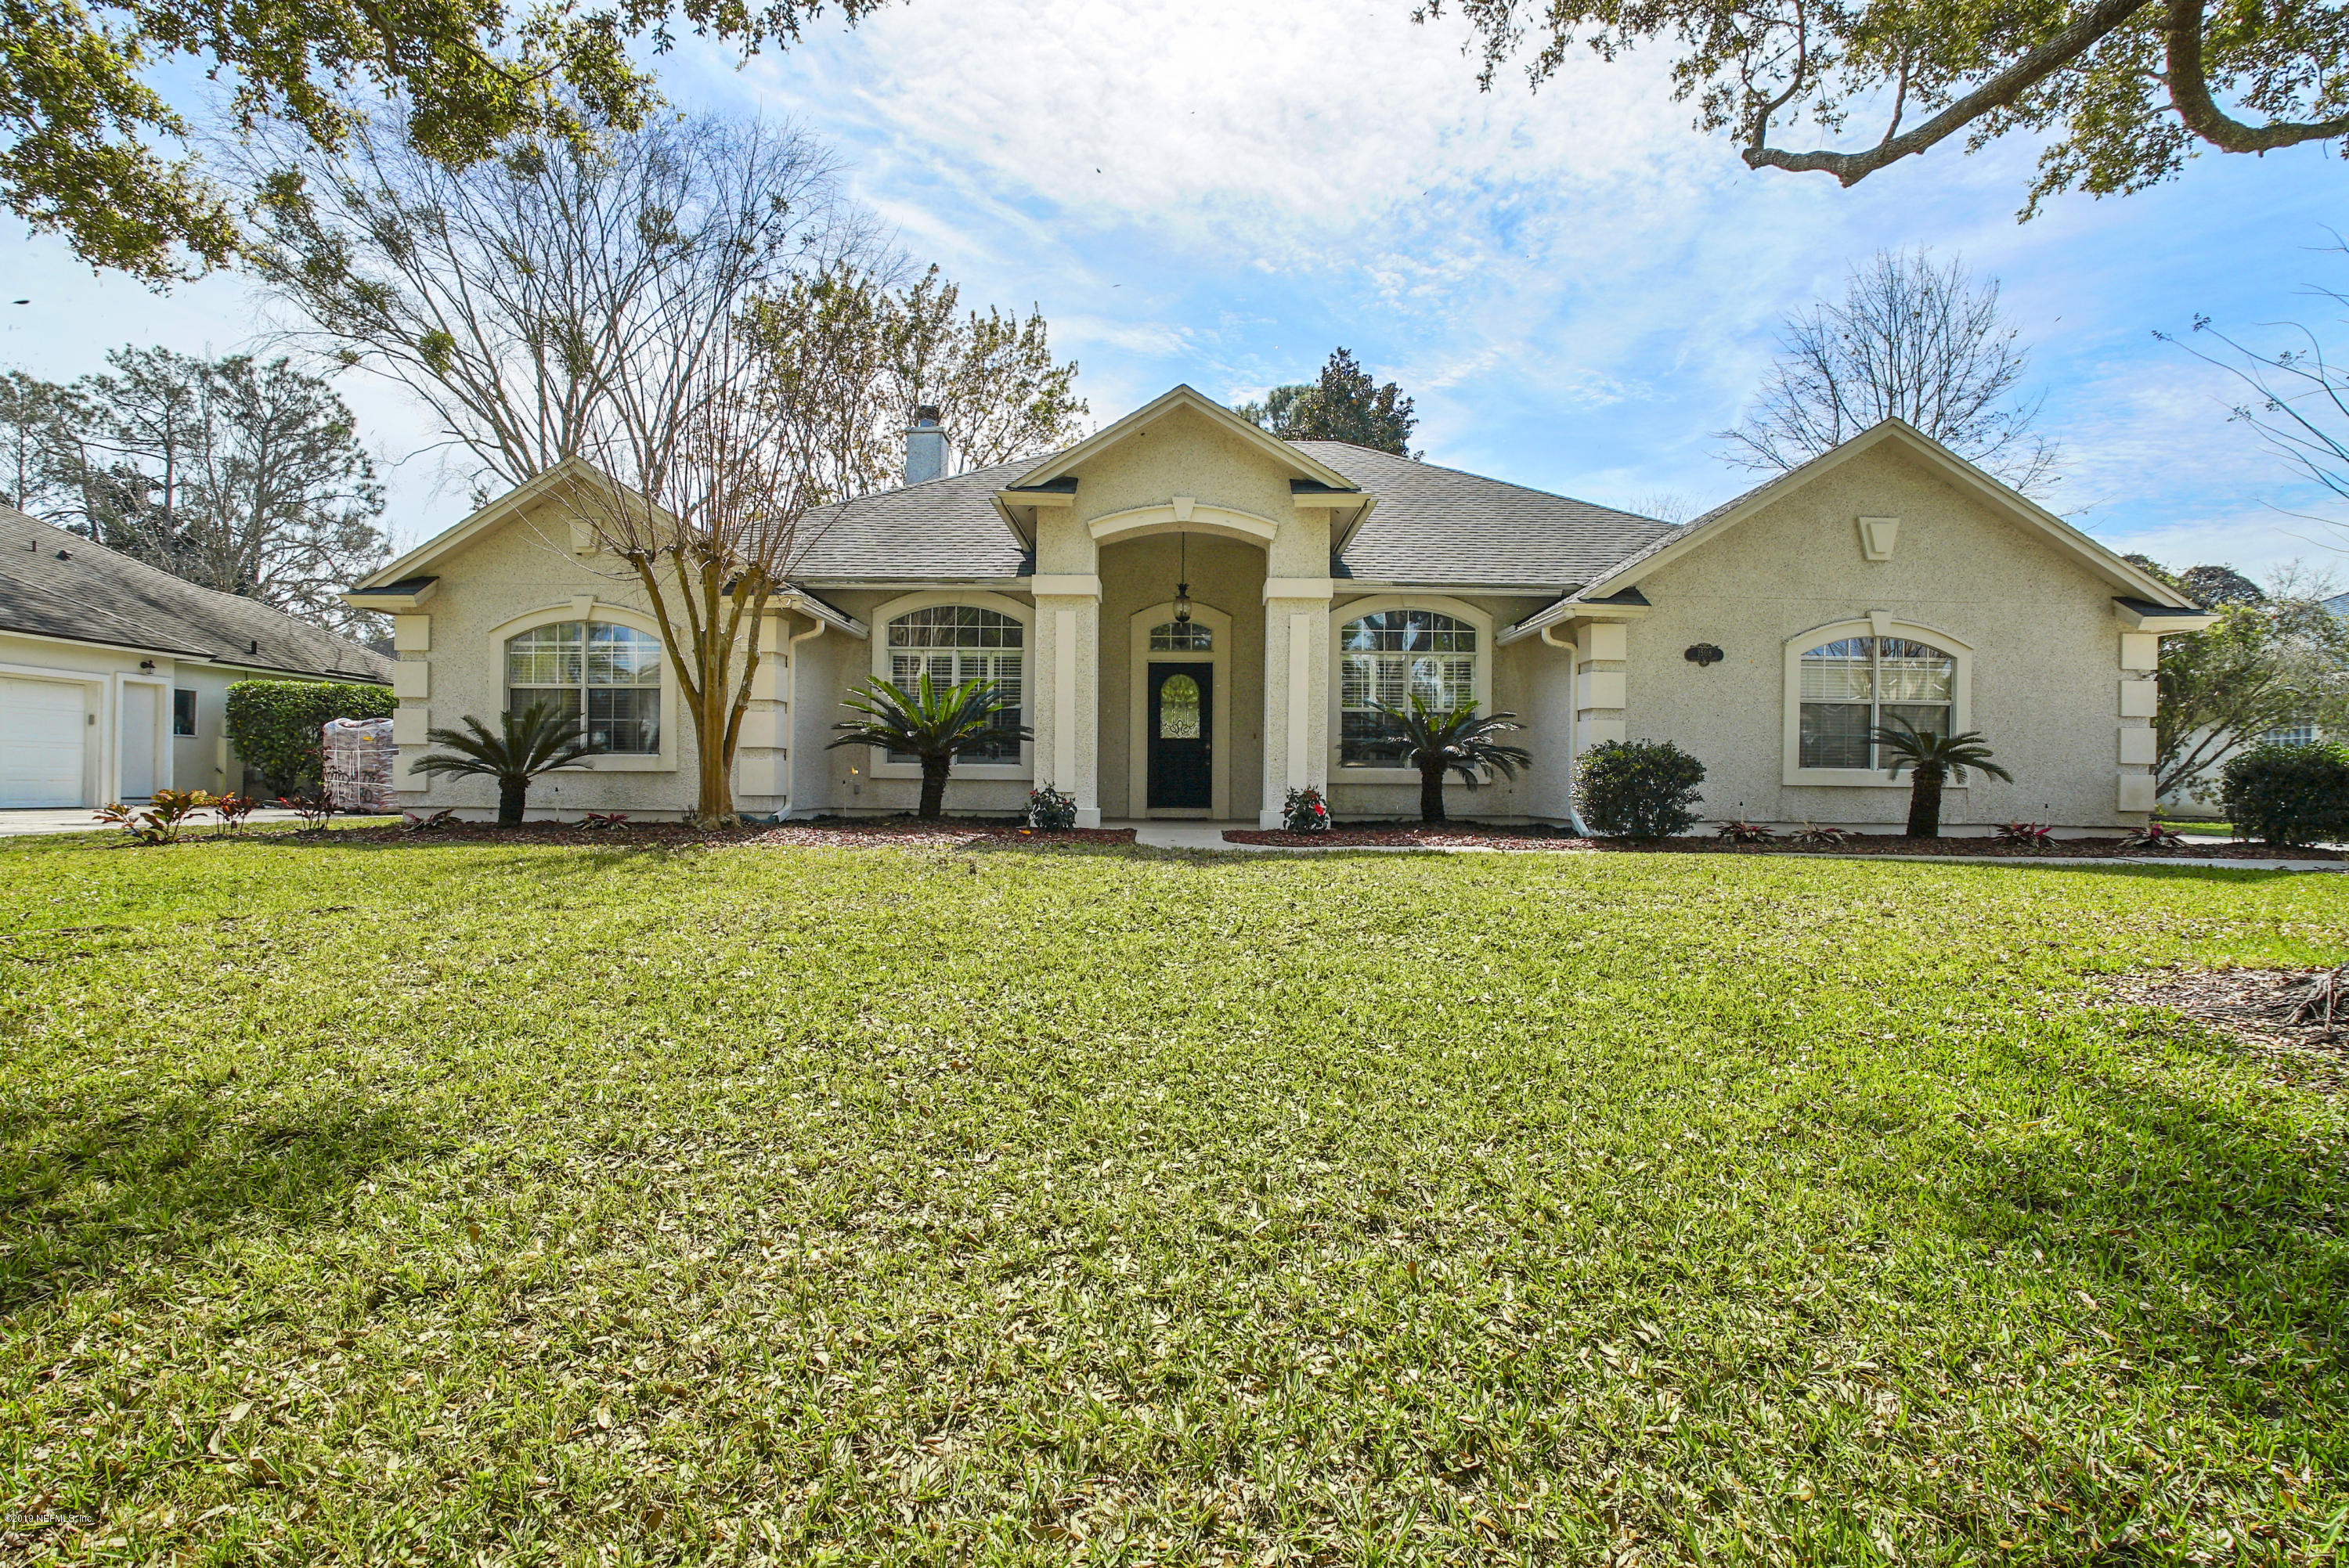 Photo of 1508 SILVER BELL, FLEMING ISLAND, FL 32003